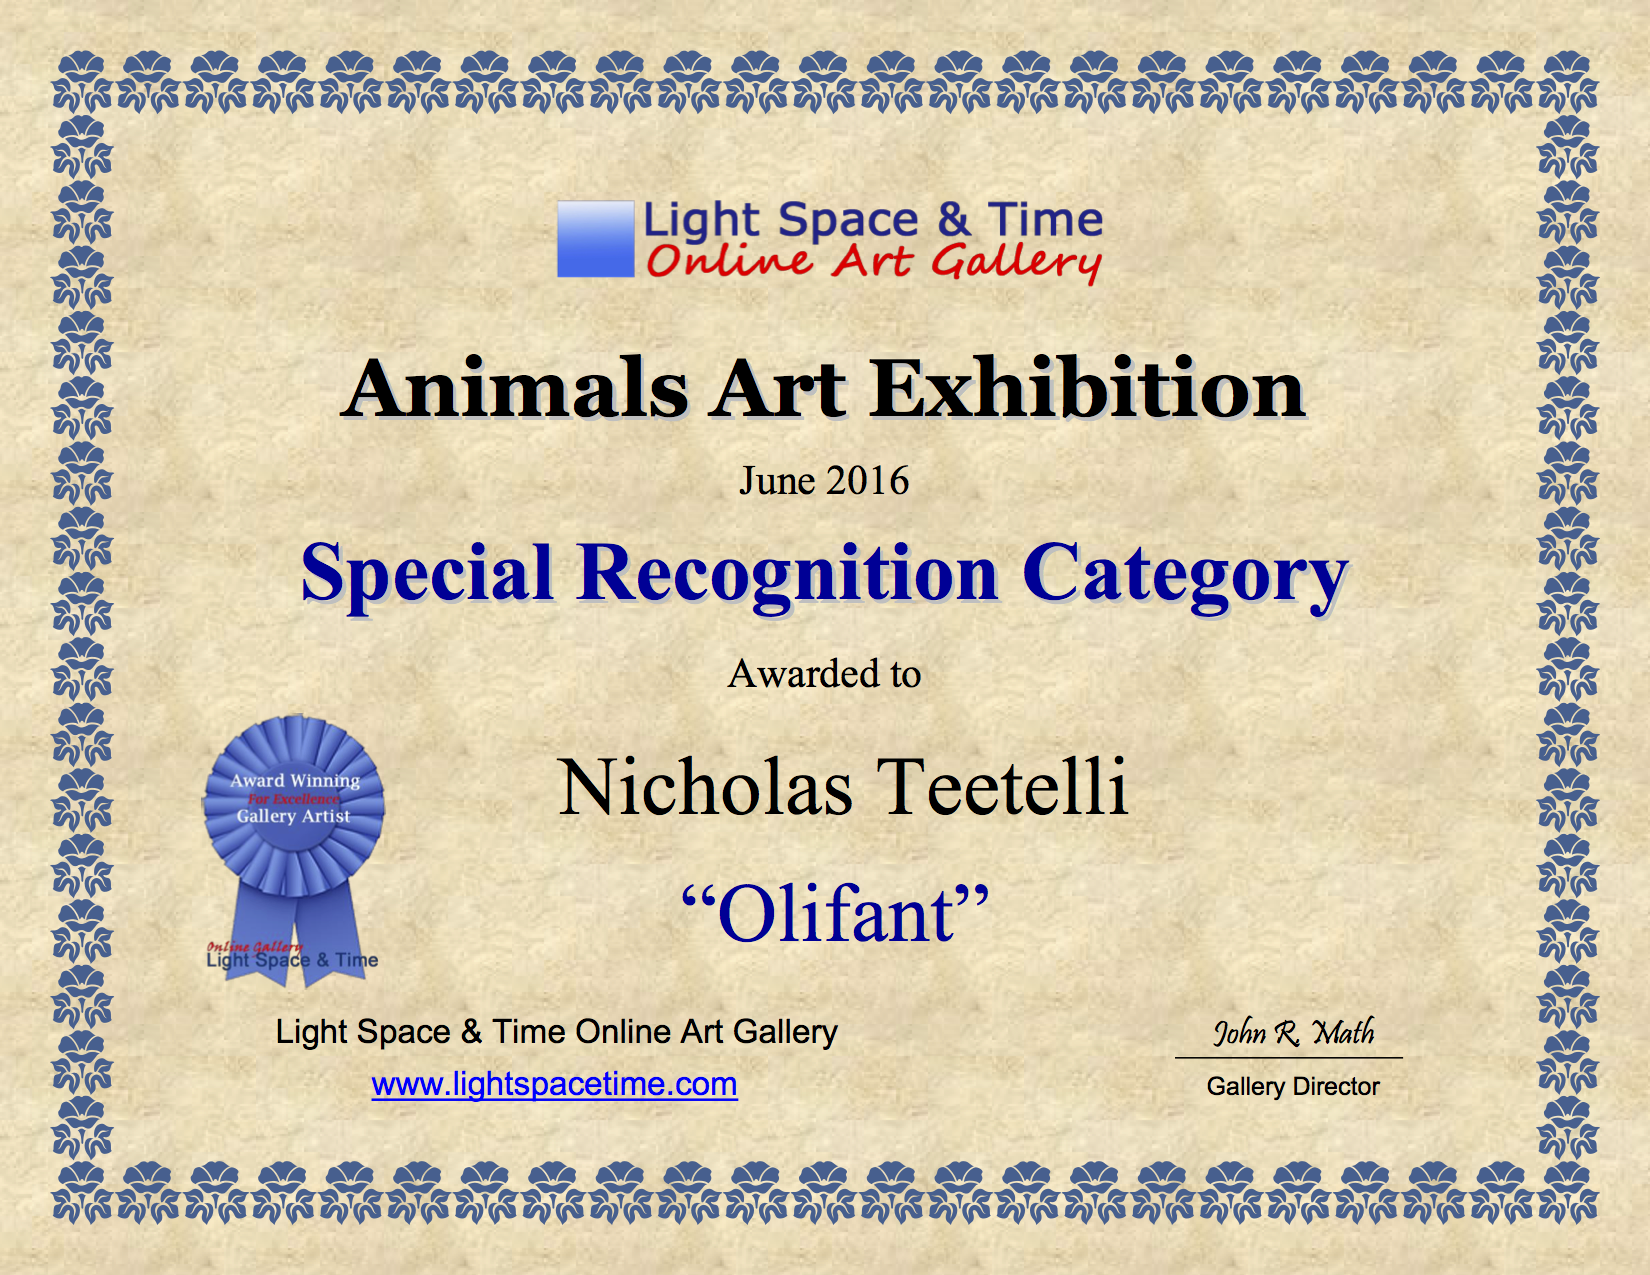 2016-06 LS&T Art Exhibition- Animals - Special Recognition - Olifant.png